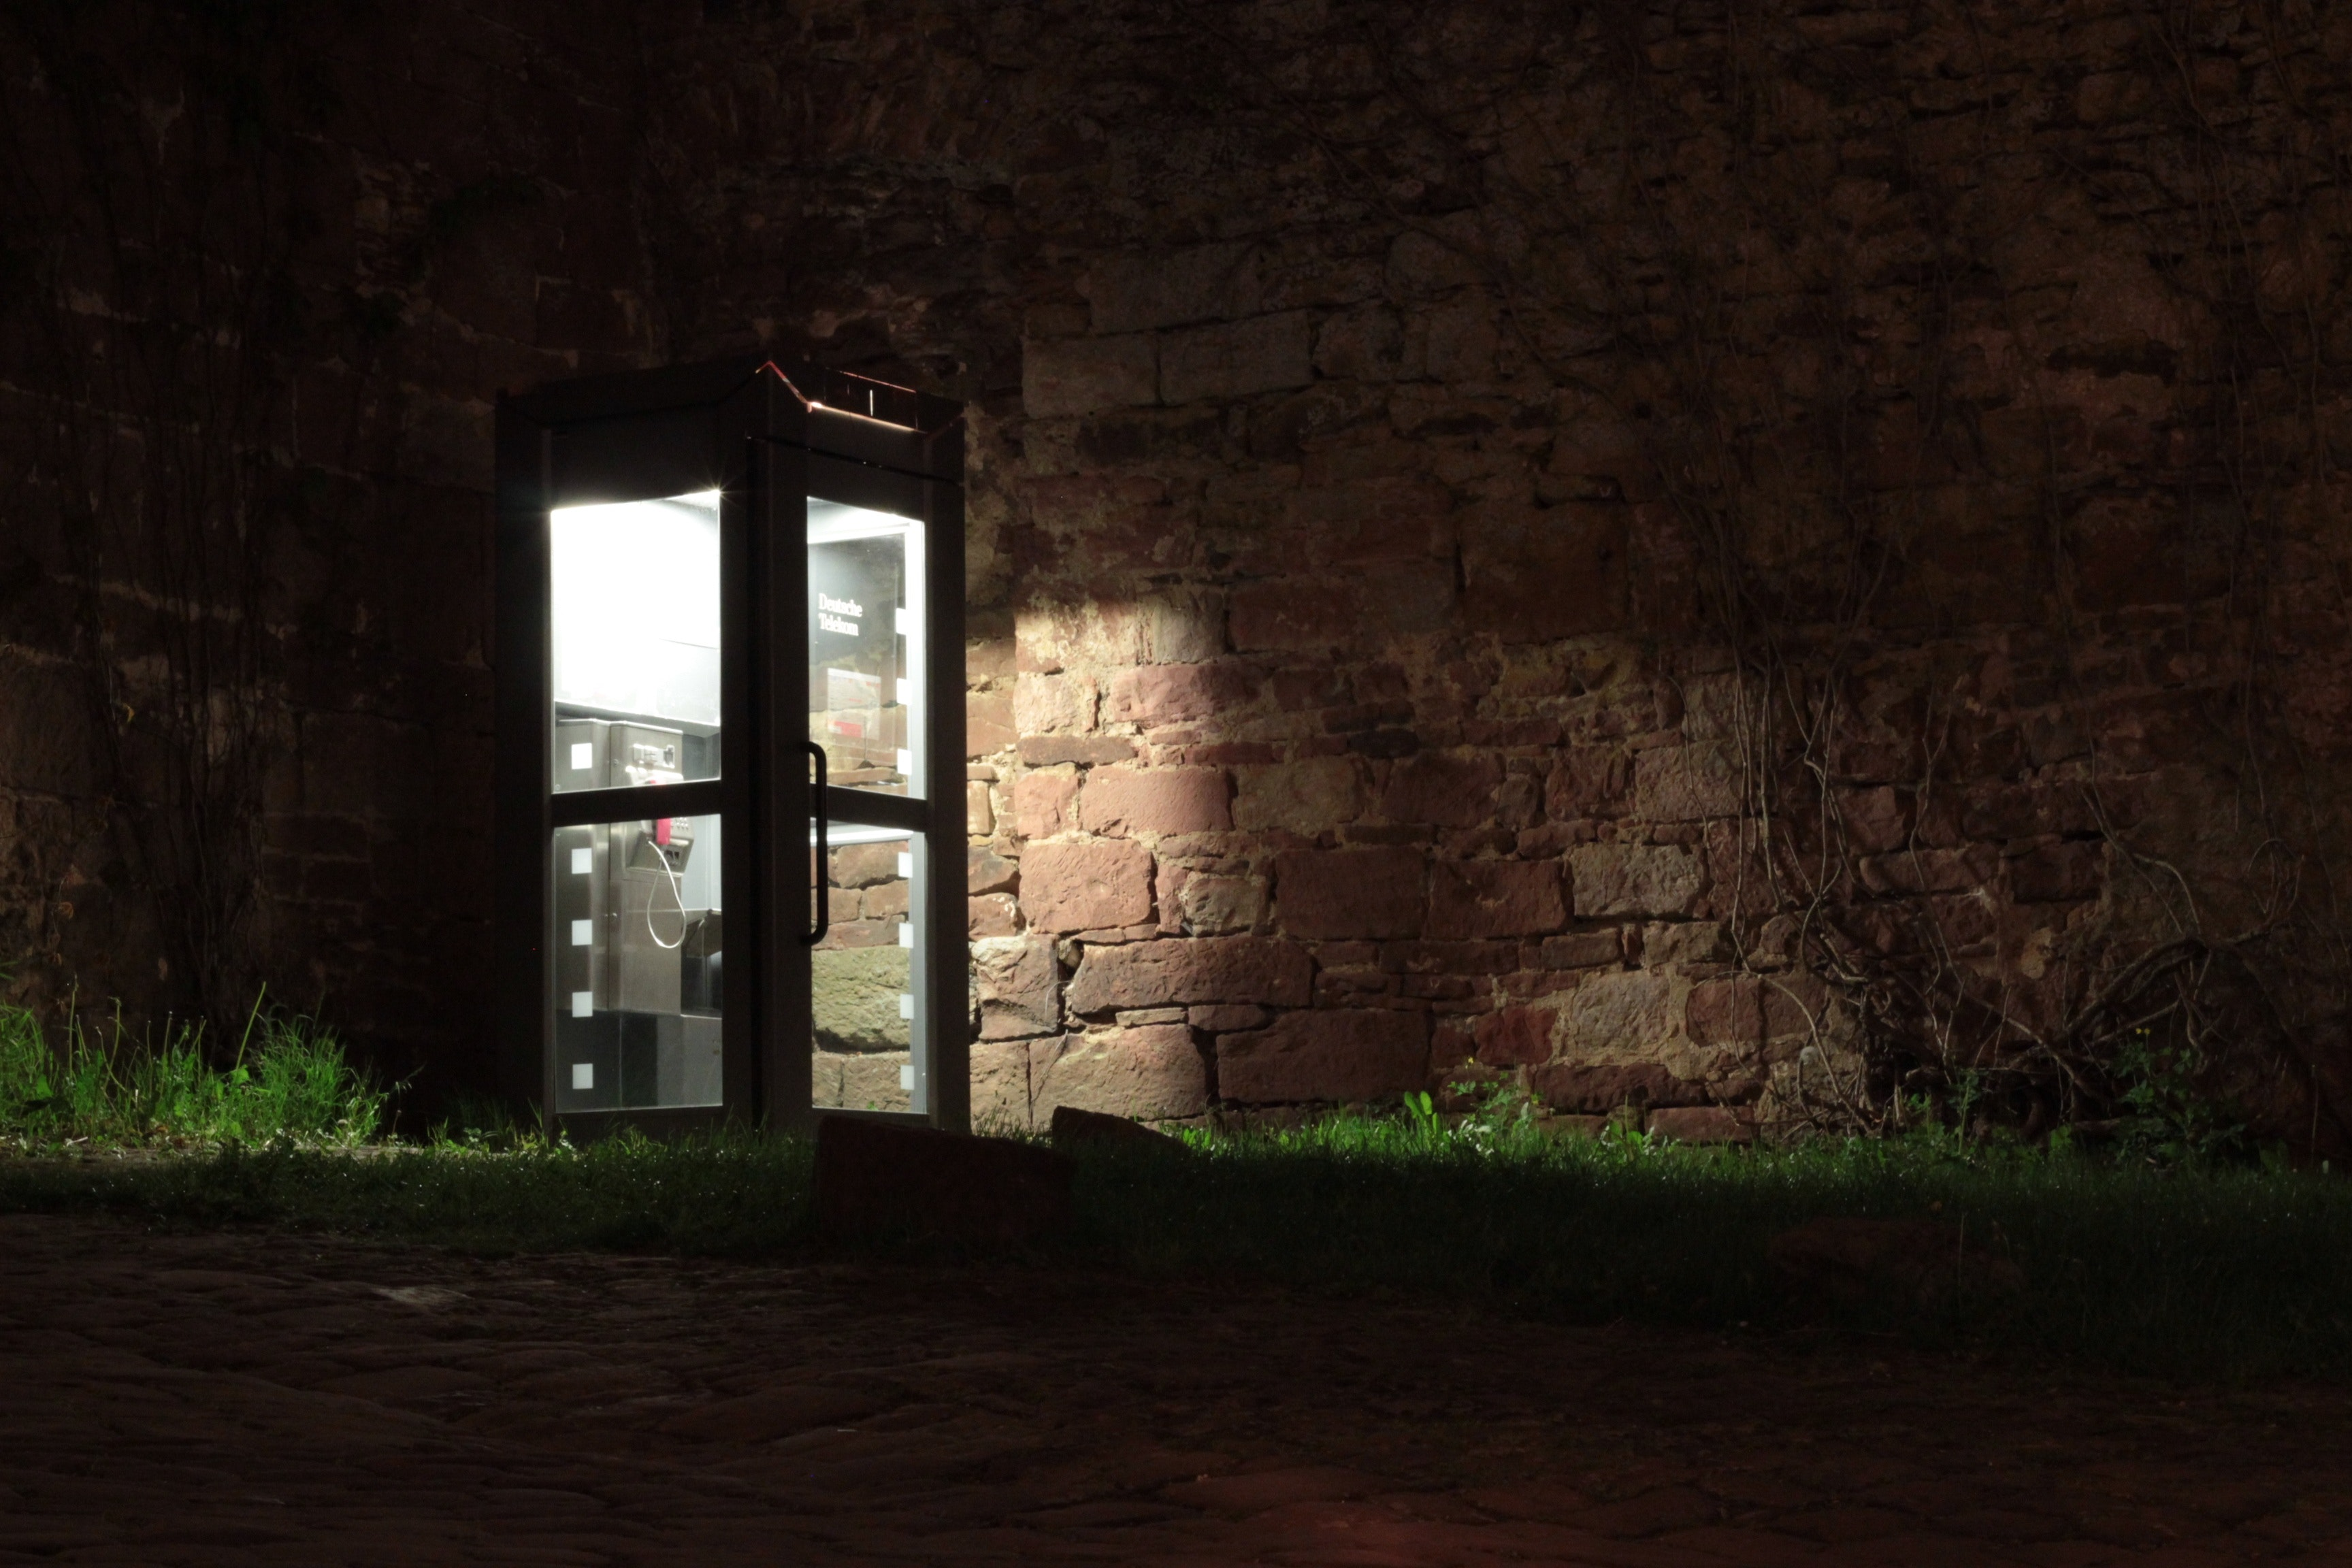 Telephone Booth Beside Brown Wall during Nighttime, Architecture, Building, Dark, Eerie, HQ Photo